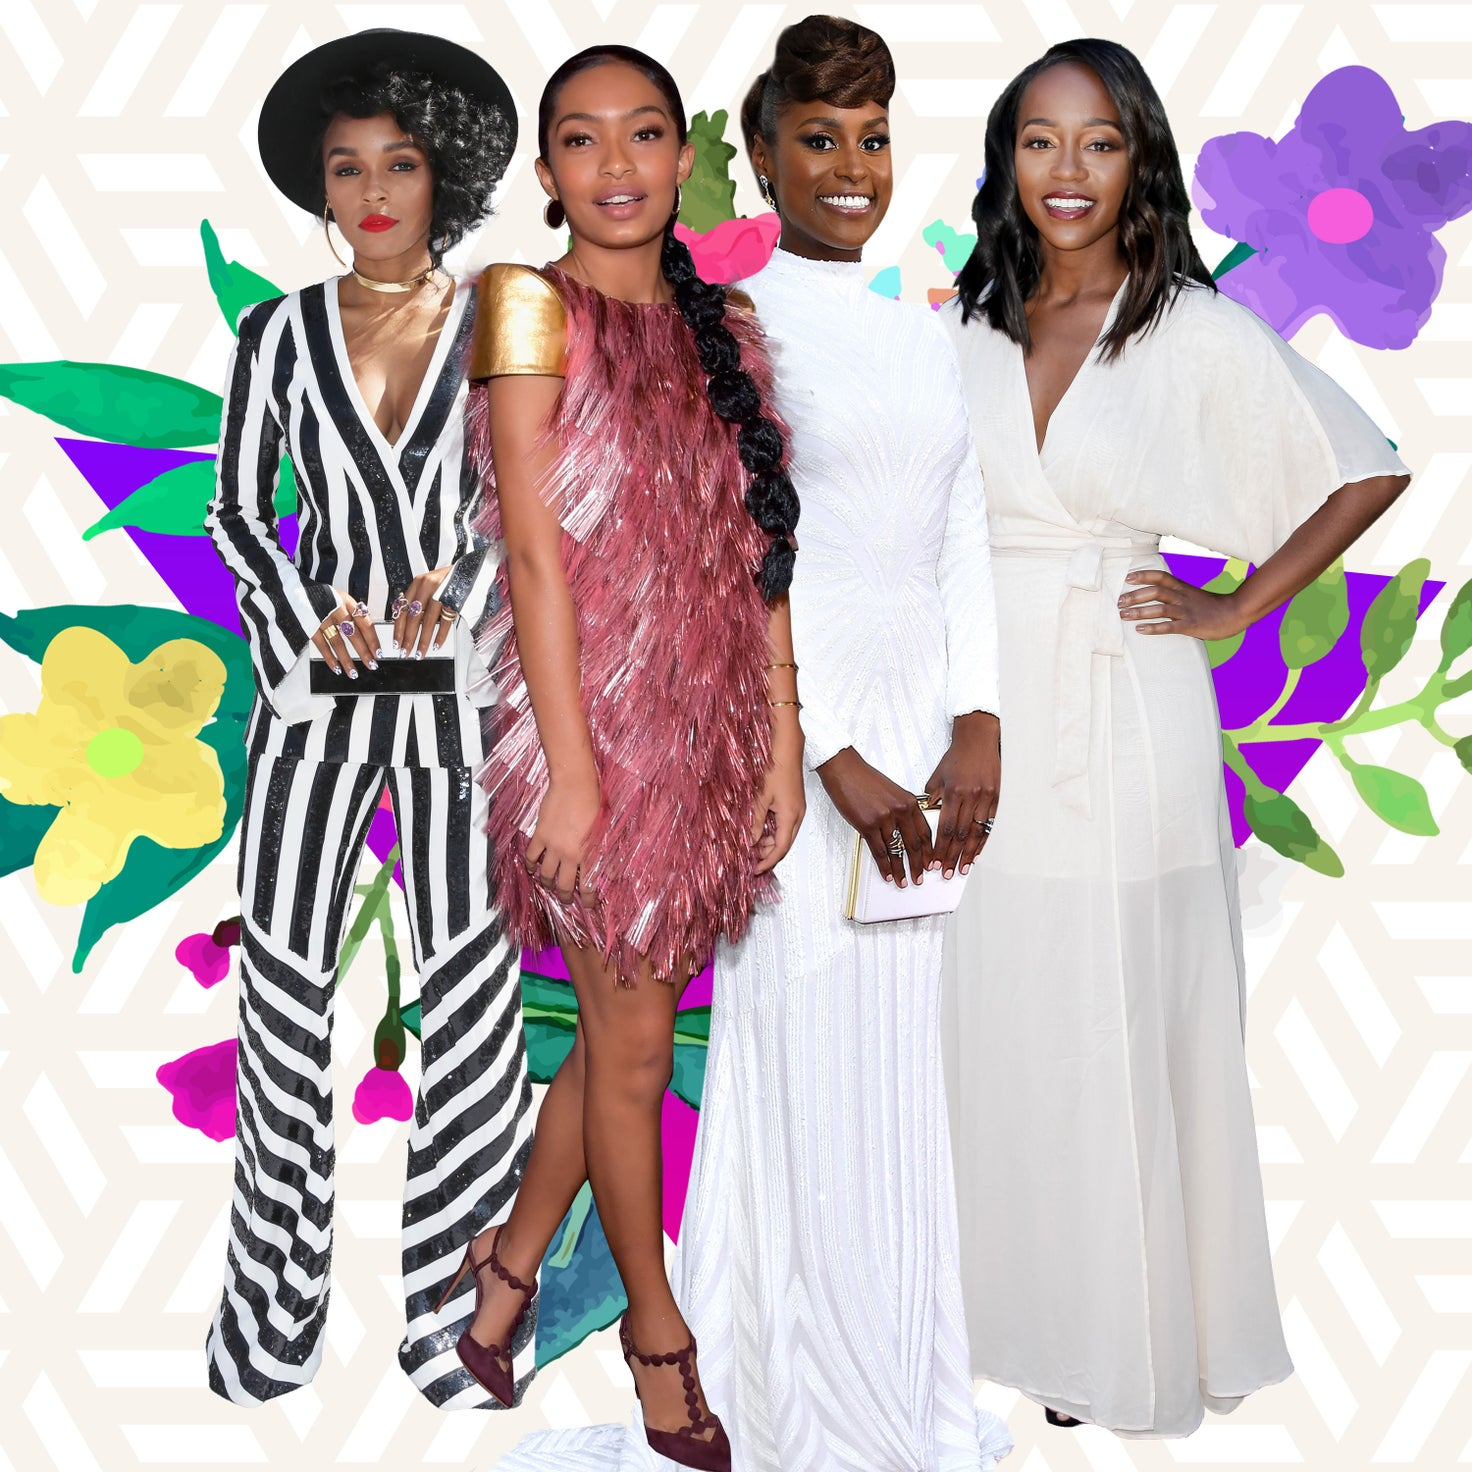 ESSENCE's 10th Annual Black Women in Hollywood Awards ToAir On OWN